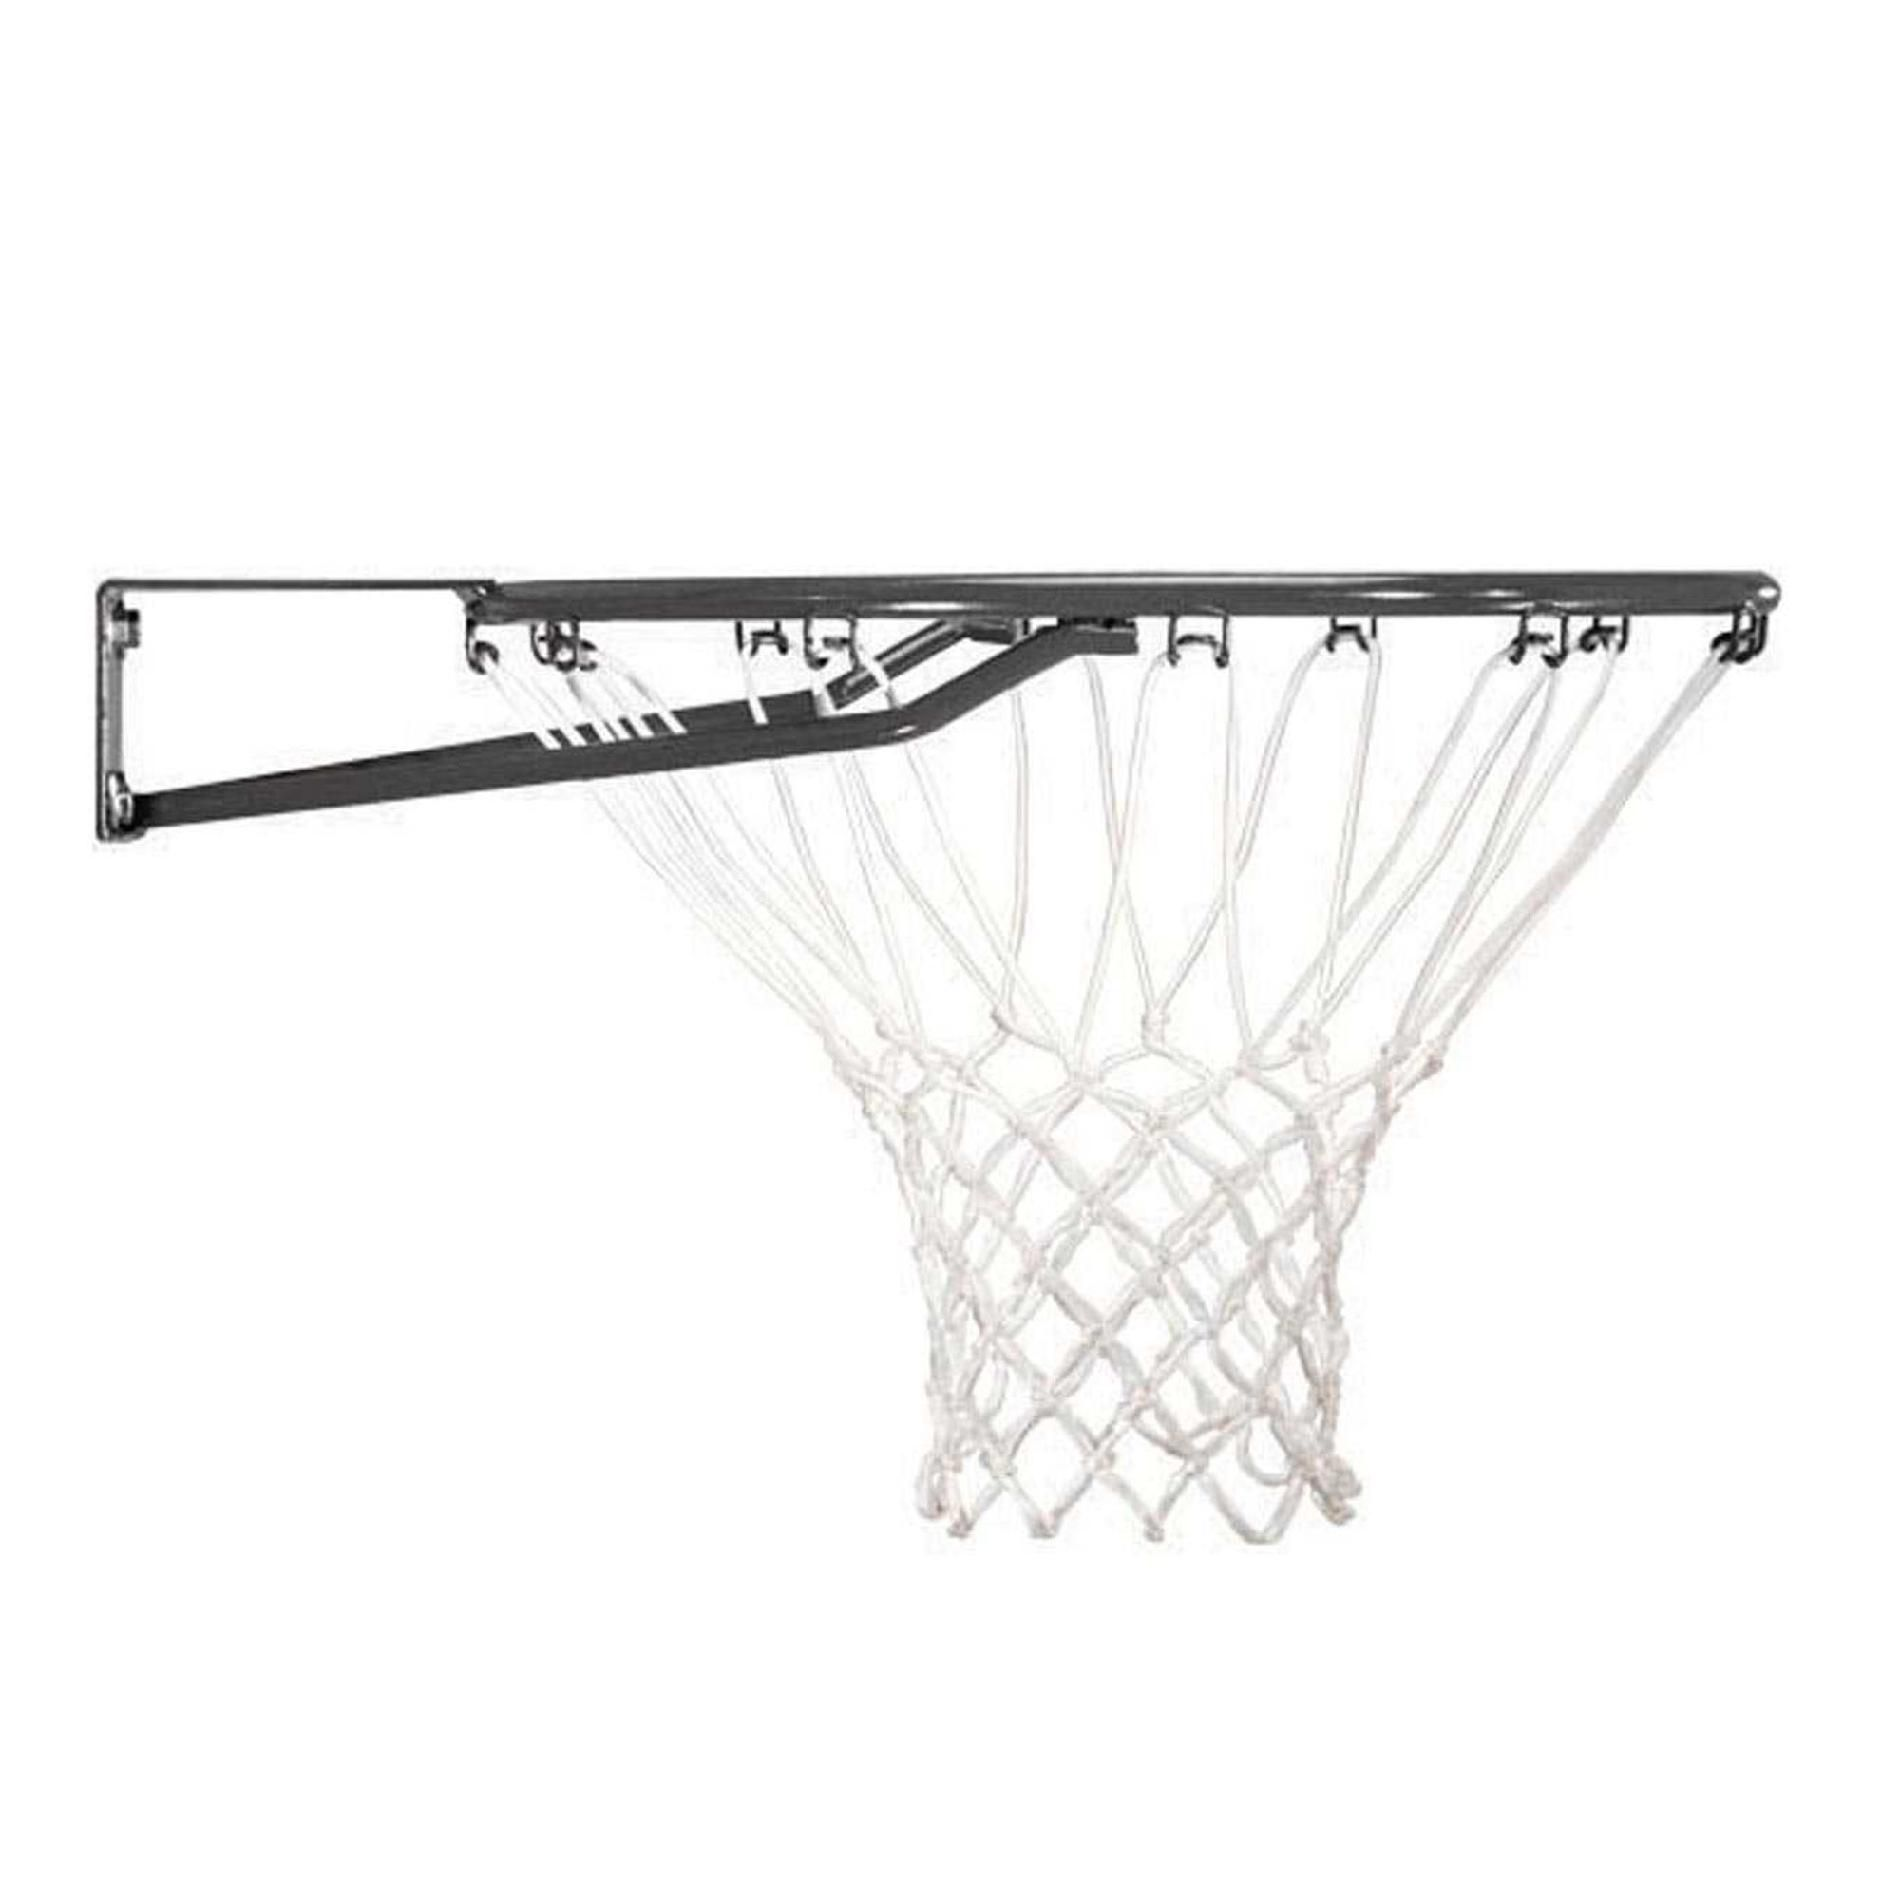 Lifetime 44 In. Portable Basketball System